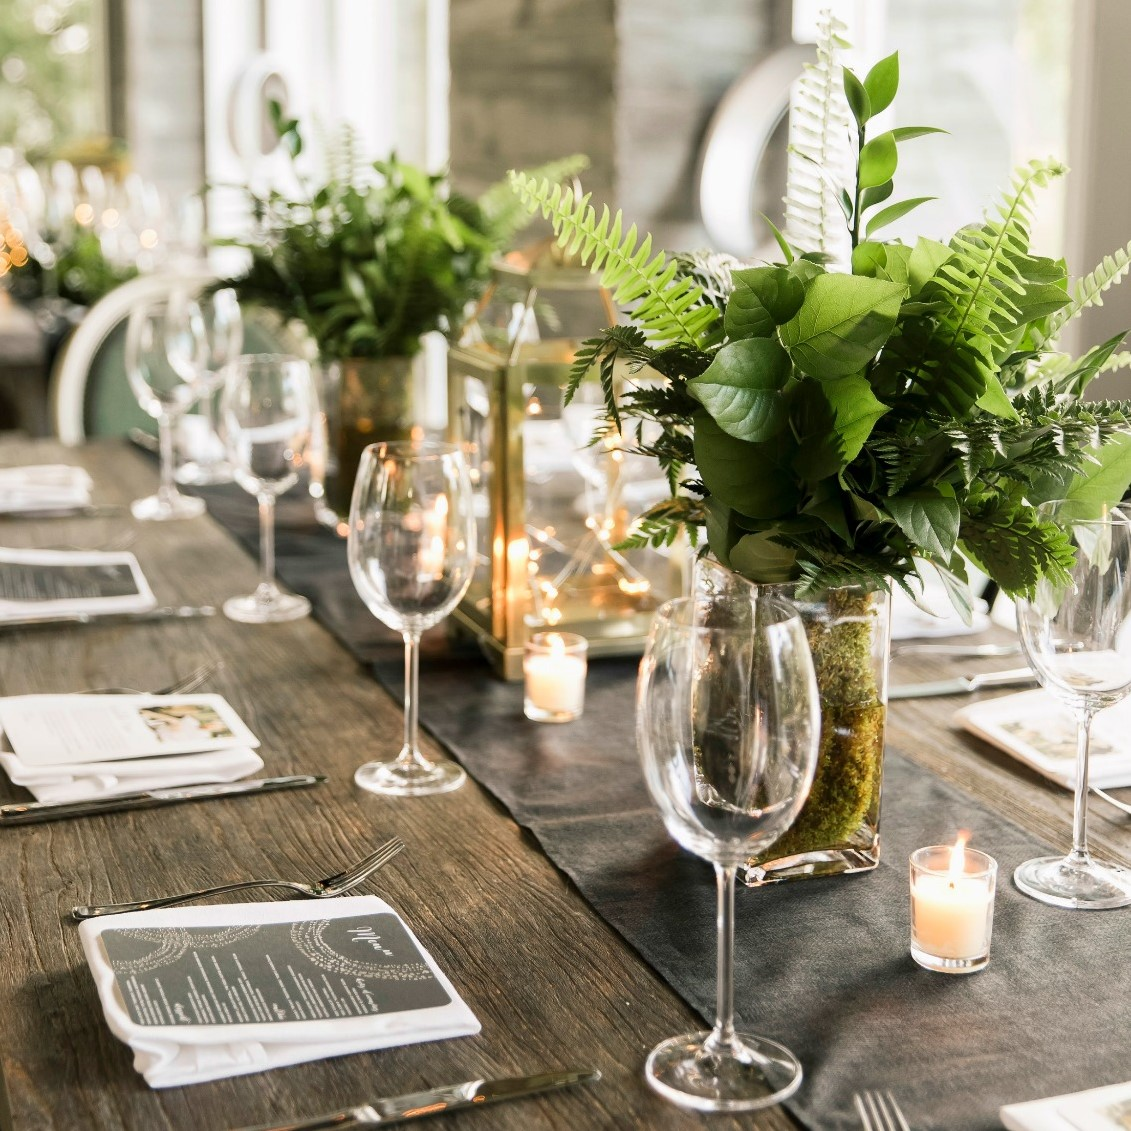 One of the fern centerpiece options for the wedding reception.